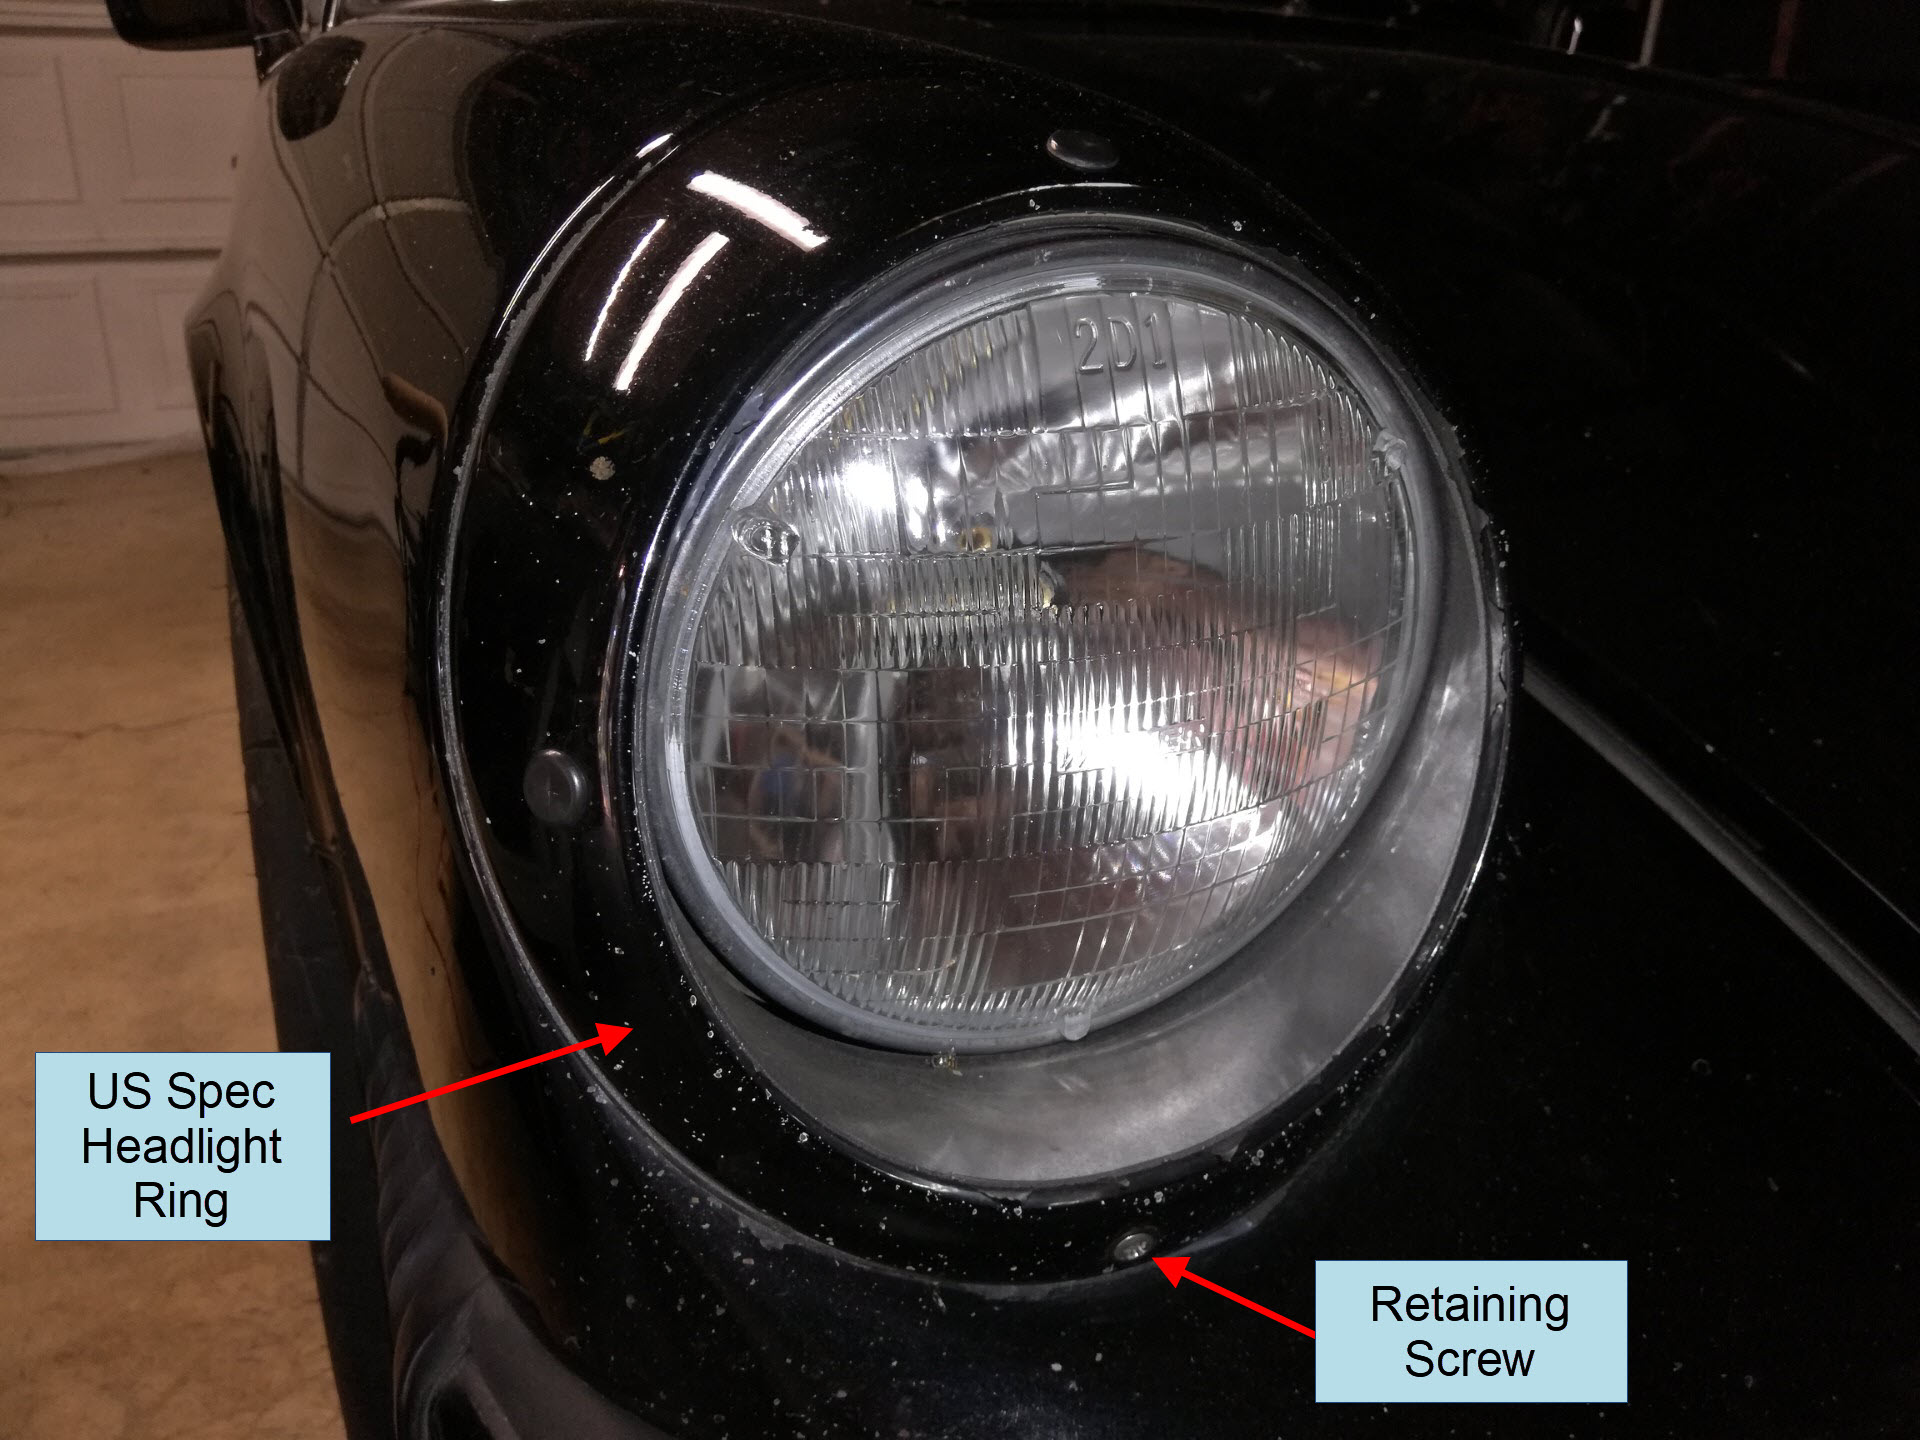 Air-cooled Porsche 911 US Spec Headlight